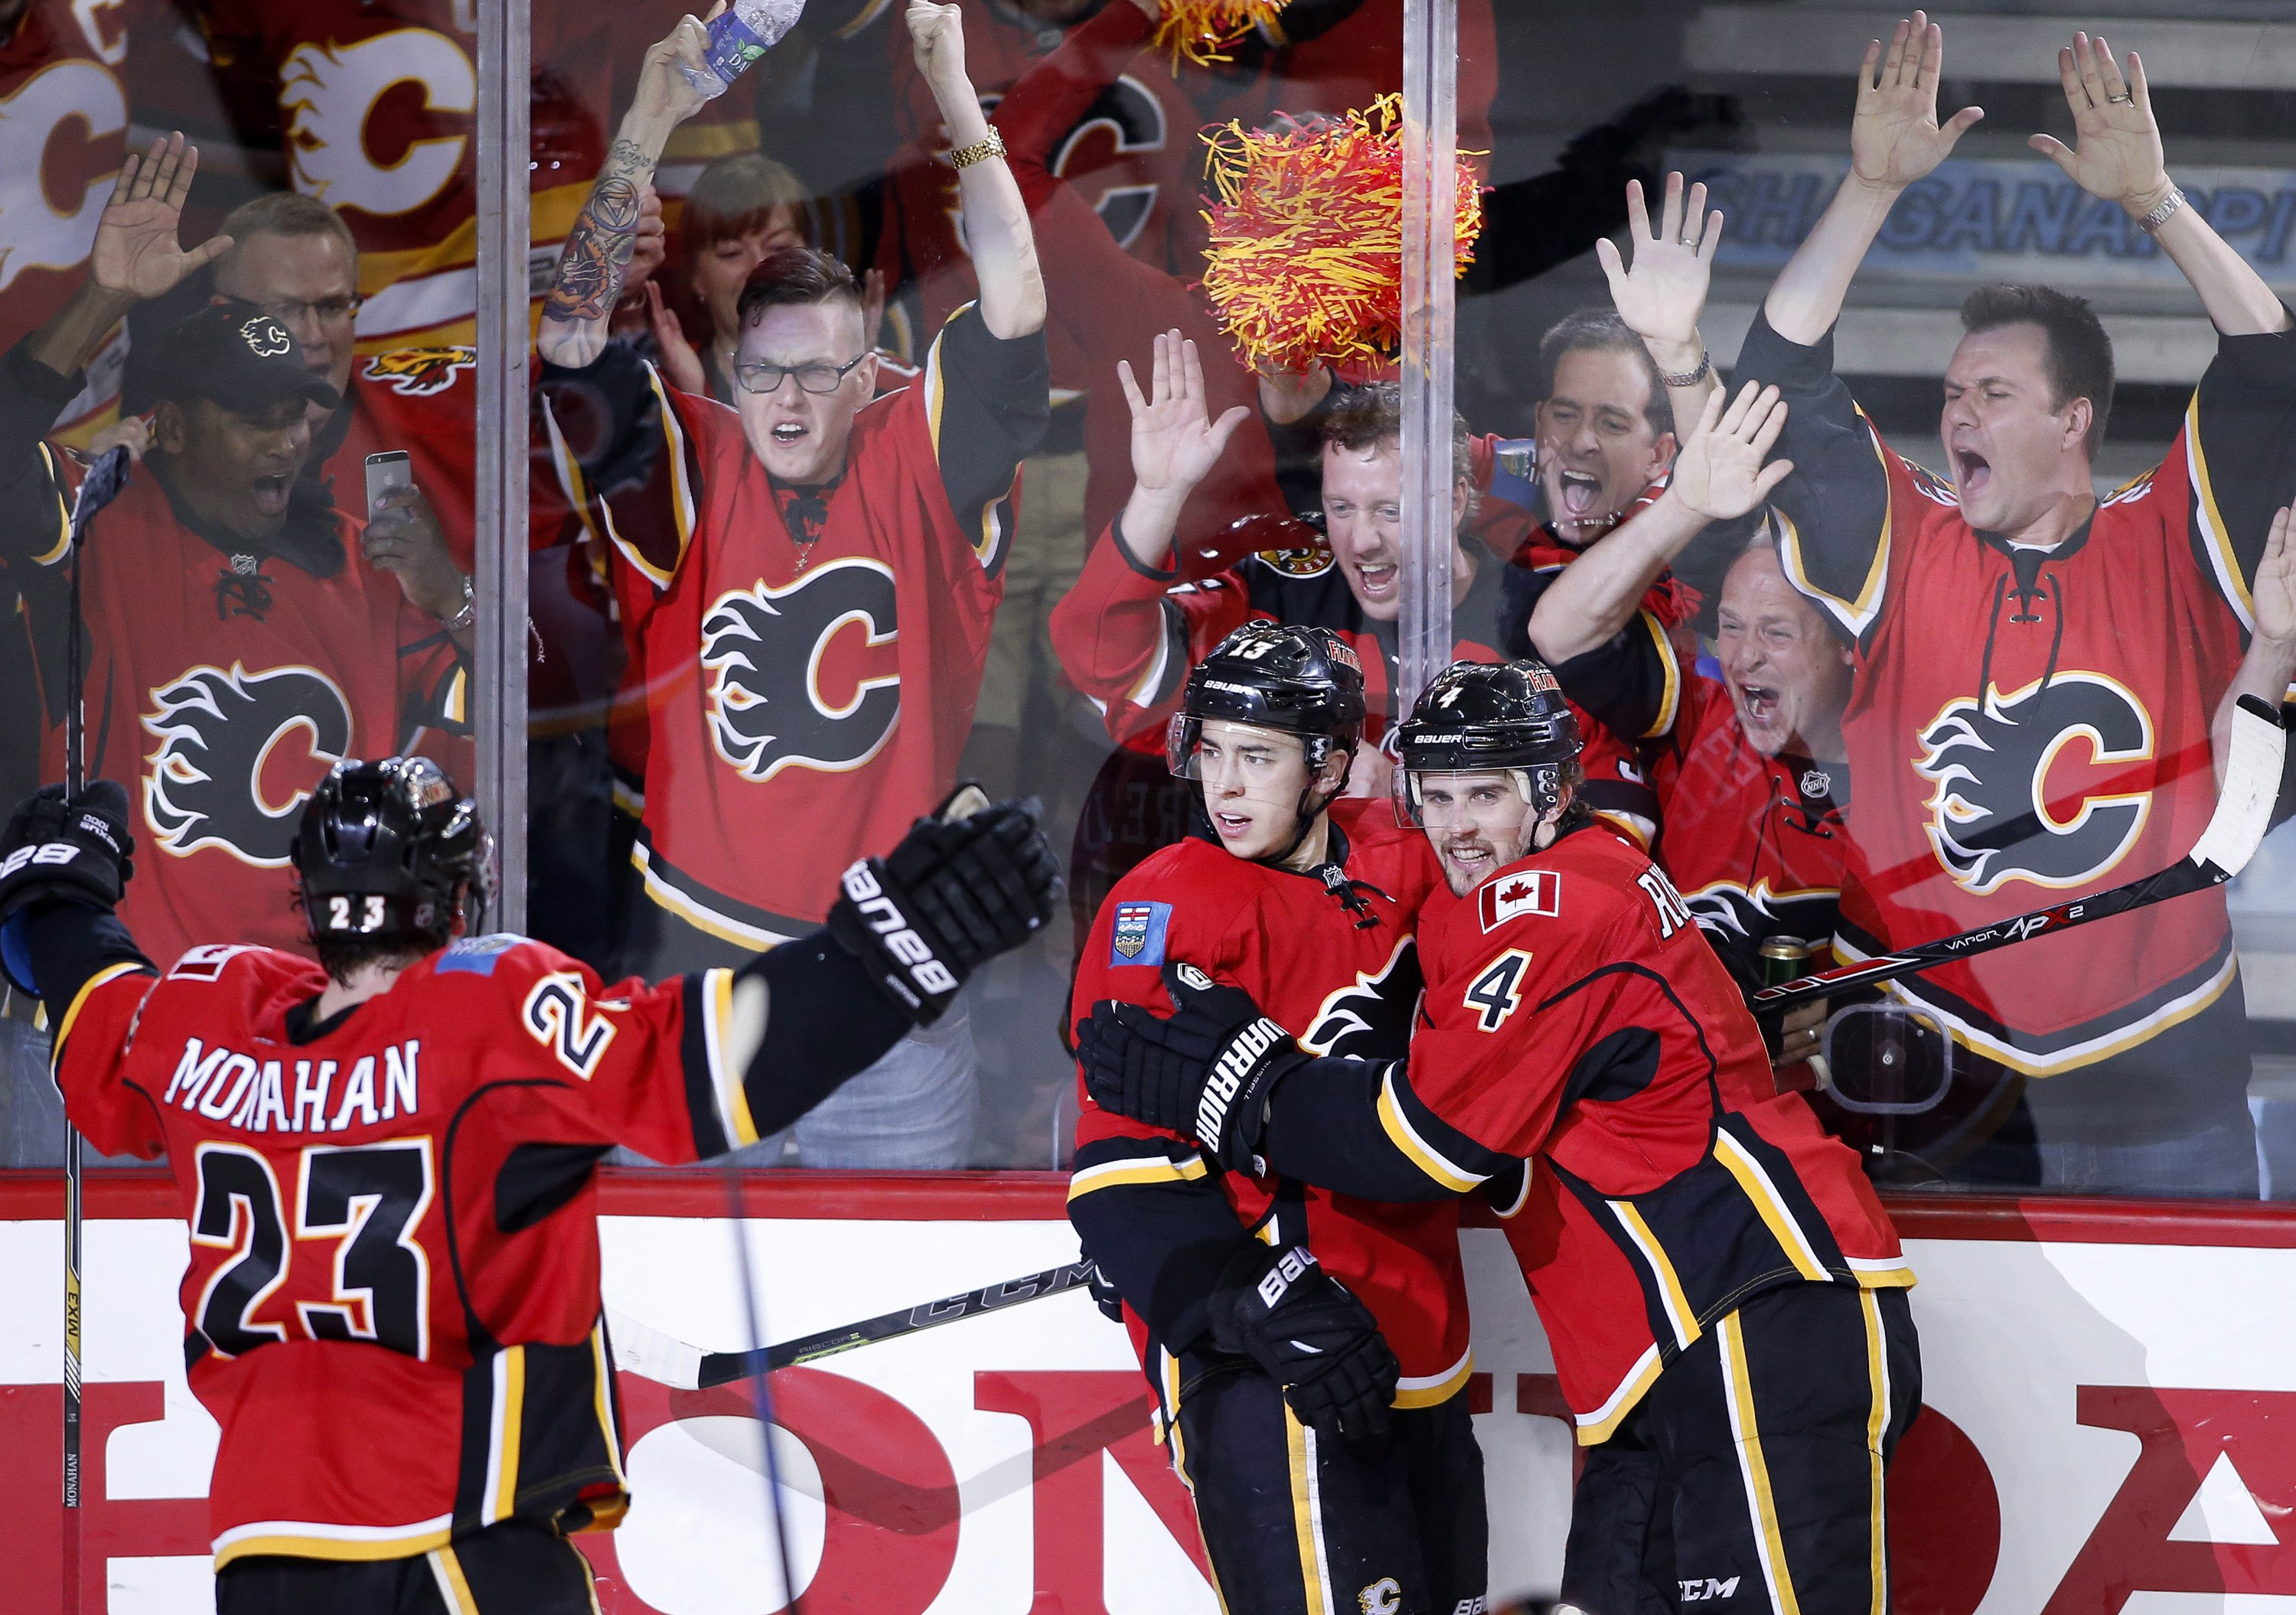 Calgary Flames' Johnny Gaudreau (13) celebrates his goal against the Anaheim Ducks with Sean Monahan (23) and Kris Russell (4) during the third period of Game 3 in the second round of the NHL Stanley Cup hockey playoffs, Tuesday, May 5, 2015, in Calgary,